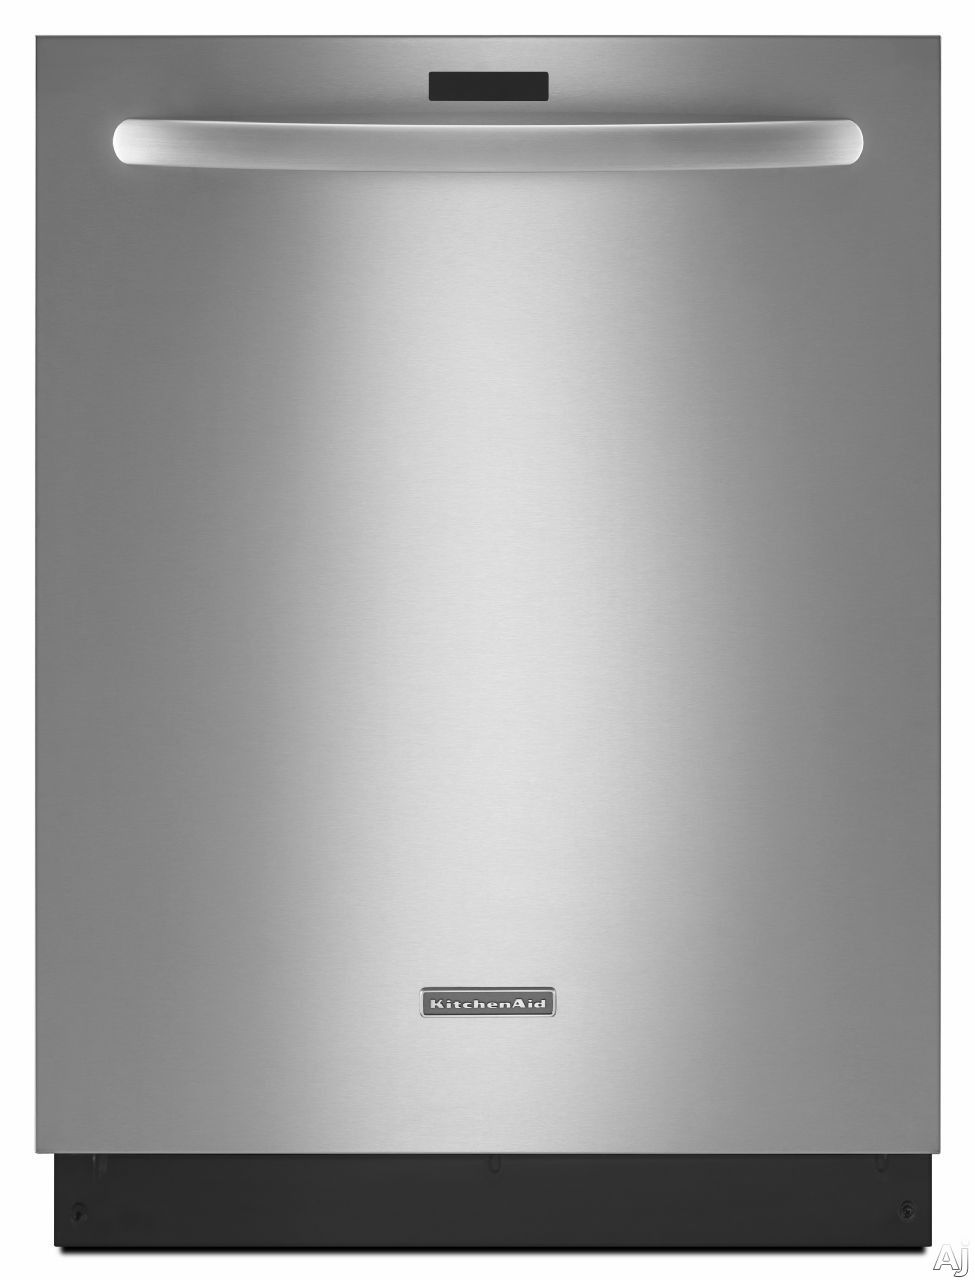 KitchenAid KDTM354DSS Fully Integrated Dishwasher with 14-Place Settings, 6 Wash Cycles, 7 Options, ProFilter Wash System, ProScrub Option, ProWash Cycle, SatinGlide Max Upper Rack, Concealed Controls and 45 dBA  $1,079.